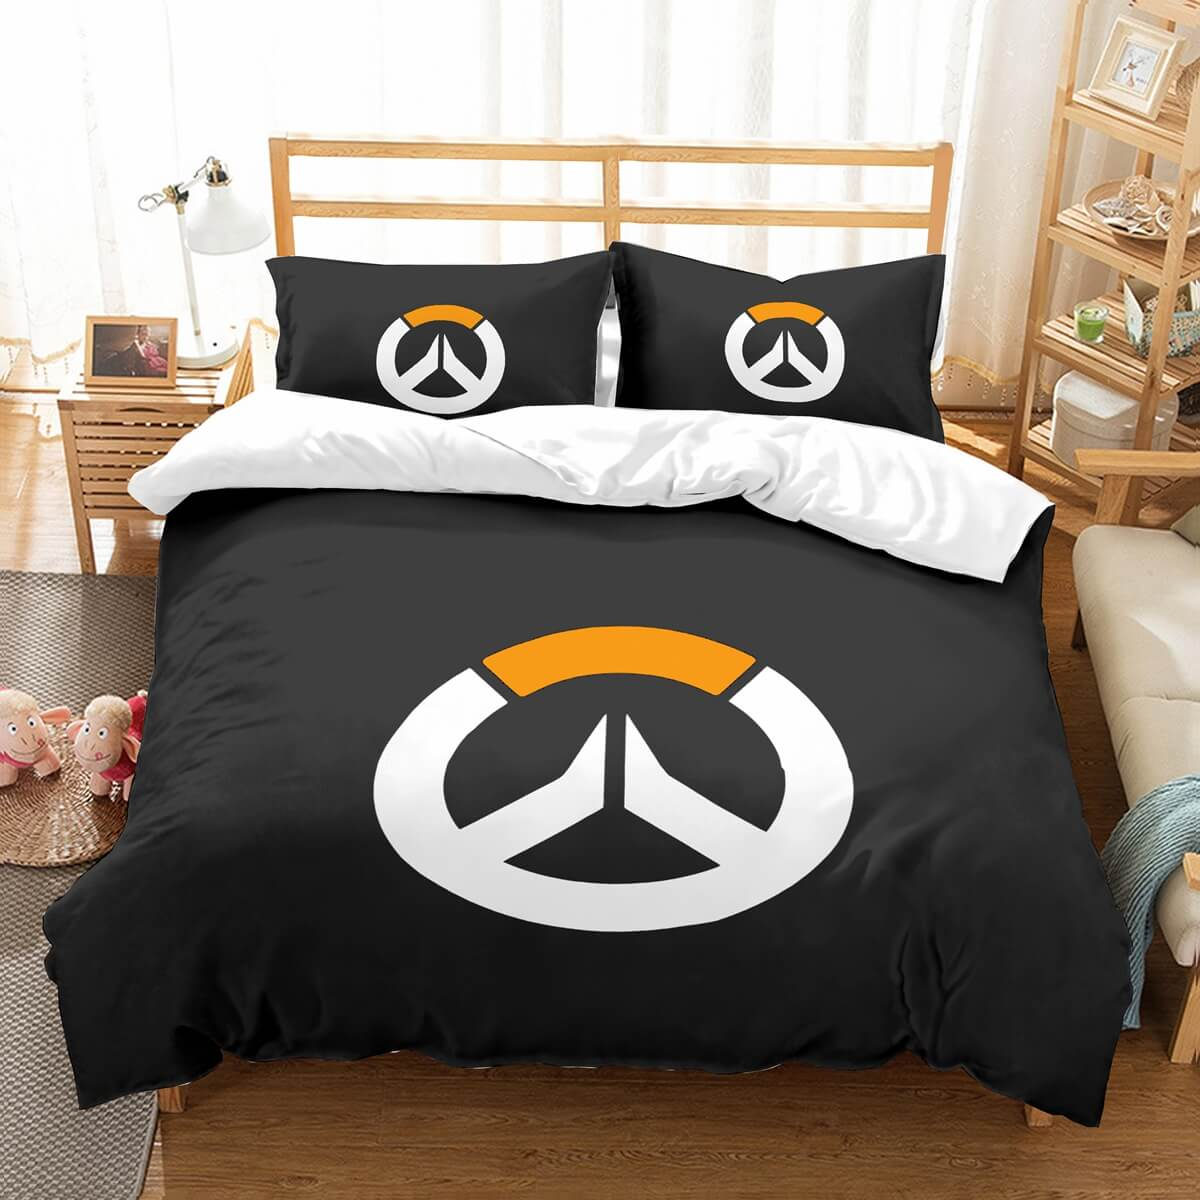 3D Customize Overwatch Bedding Set Duvet Cover Set Bedroom Set Bedlinen